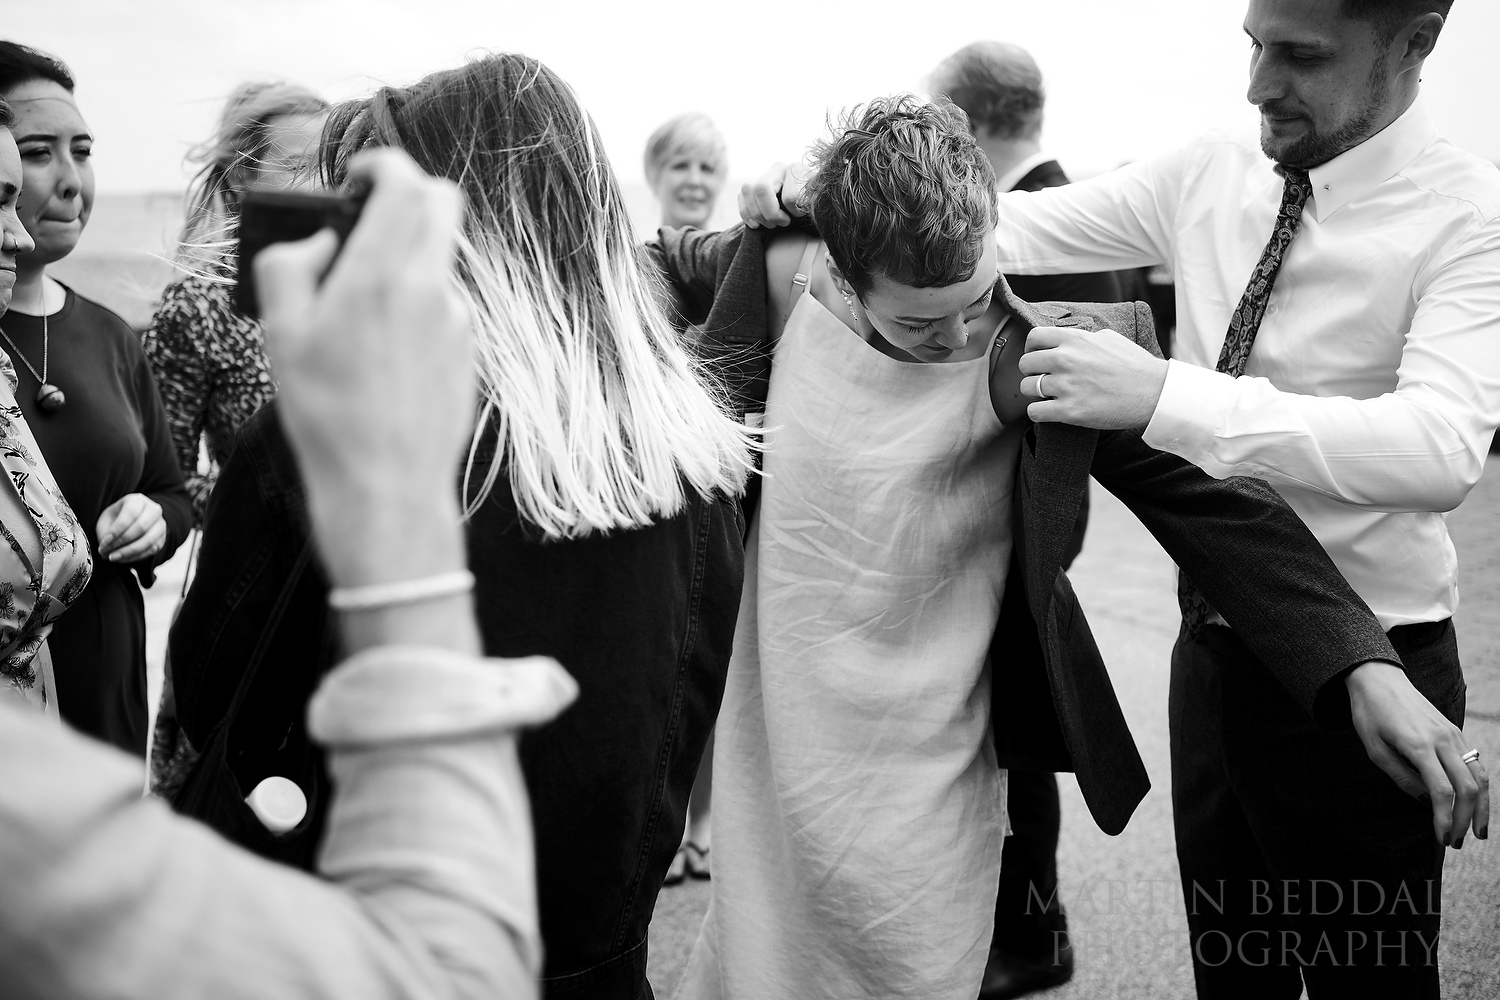 Groom offers his jacket to the bride